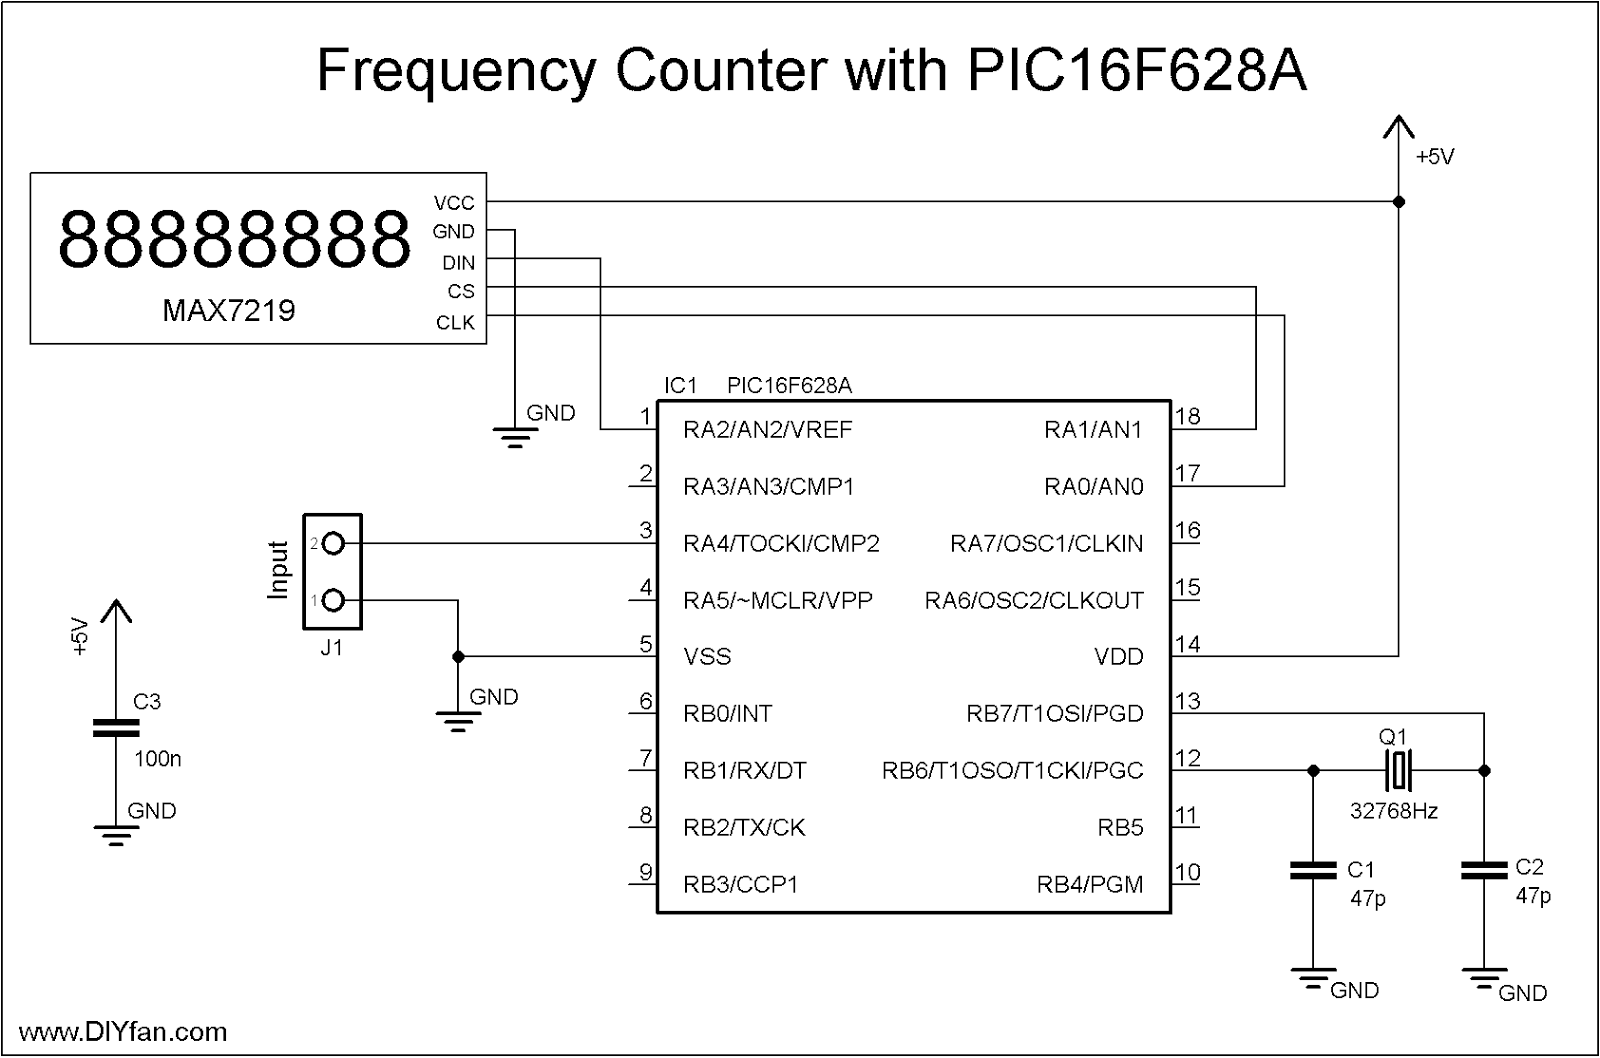 Pic 16f628 Frequency Counter : Diyfan mhz frequency counter